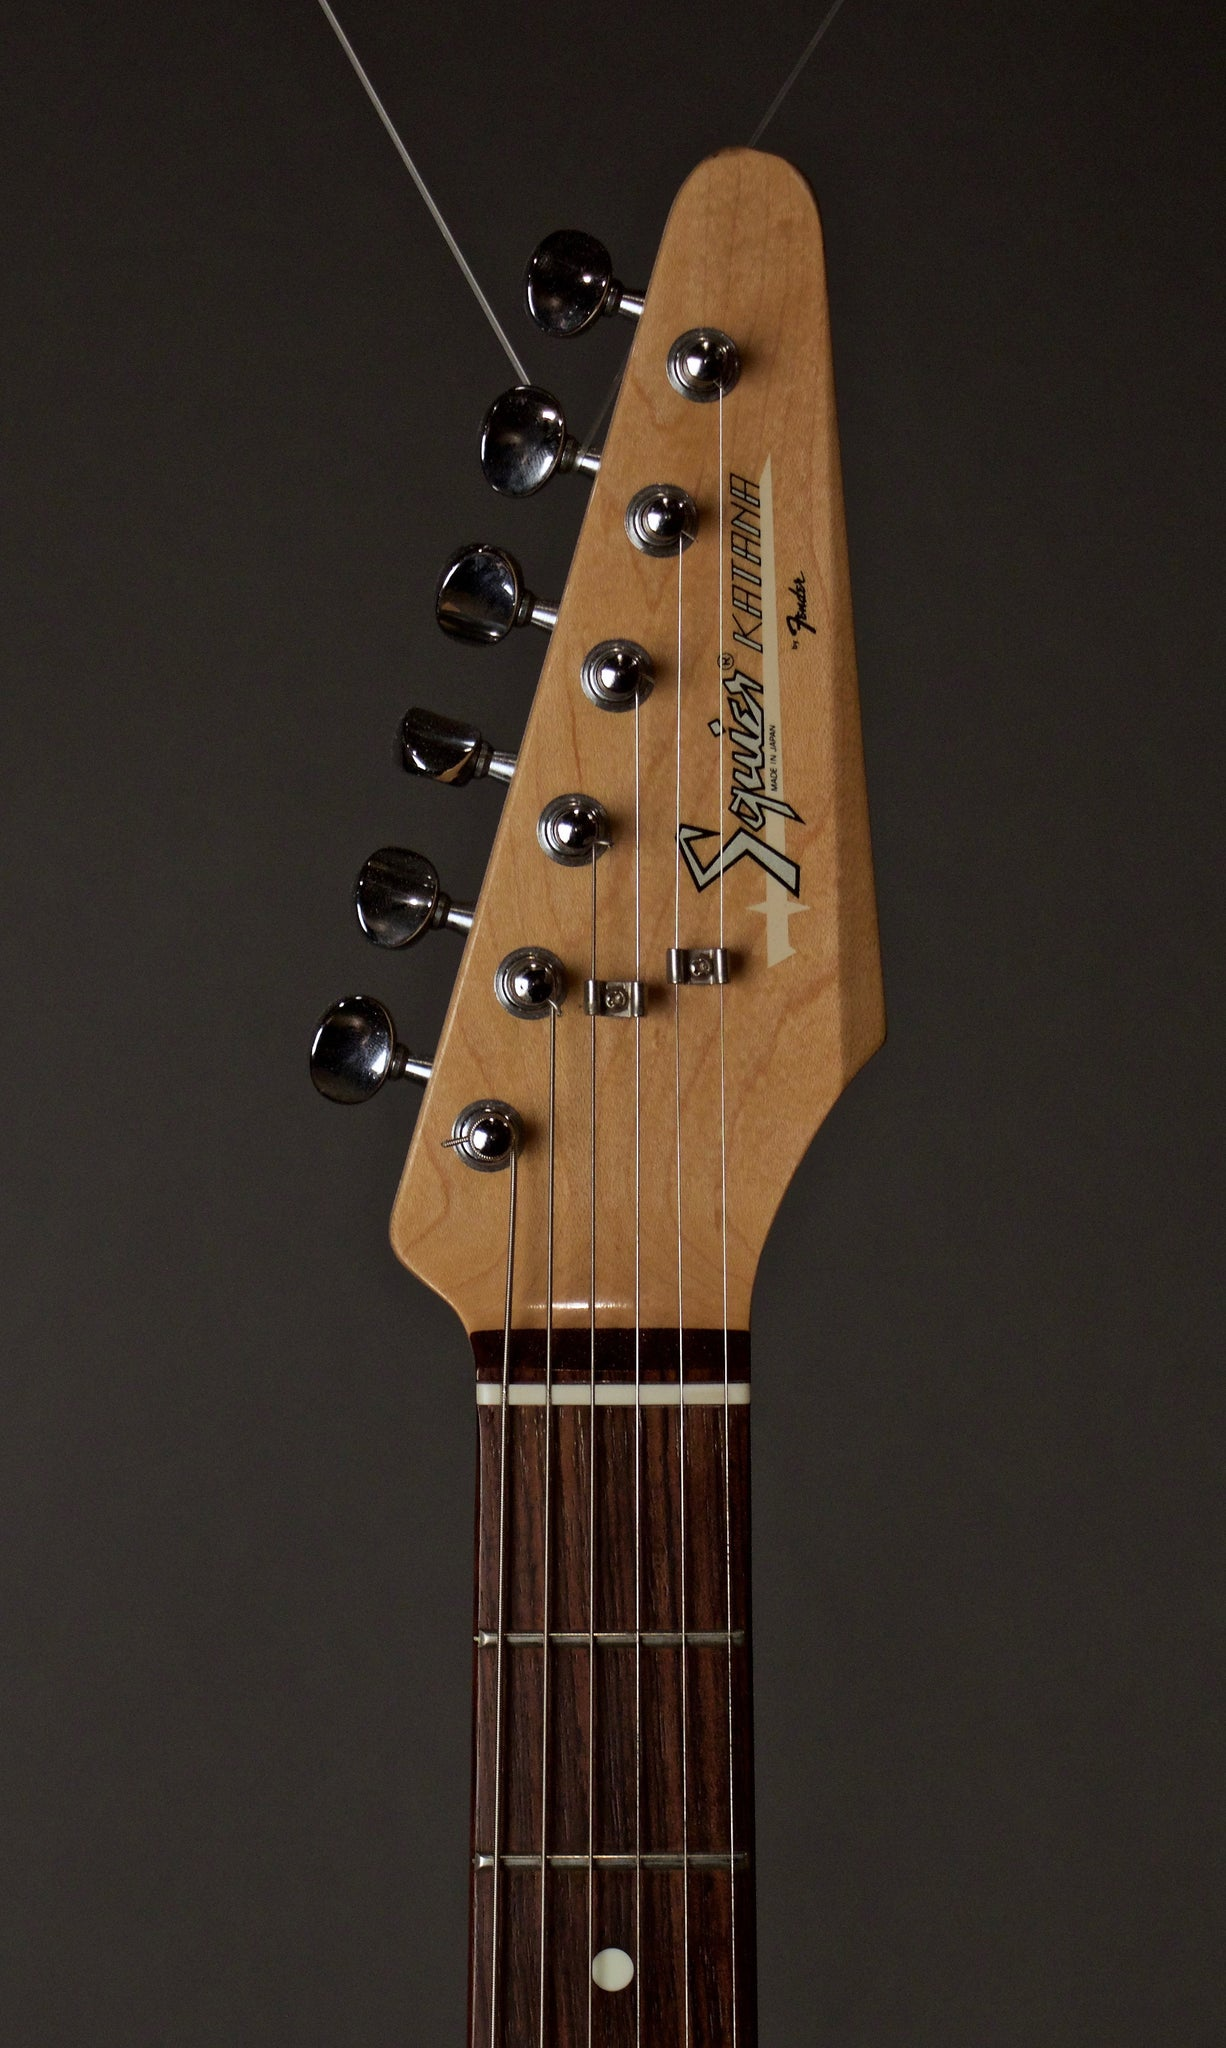 Fender Squire Katana Electric Guitar Headstock